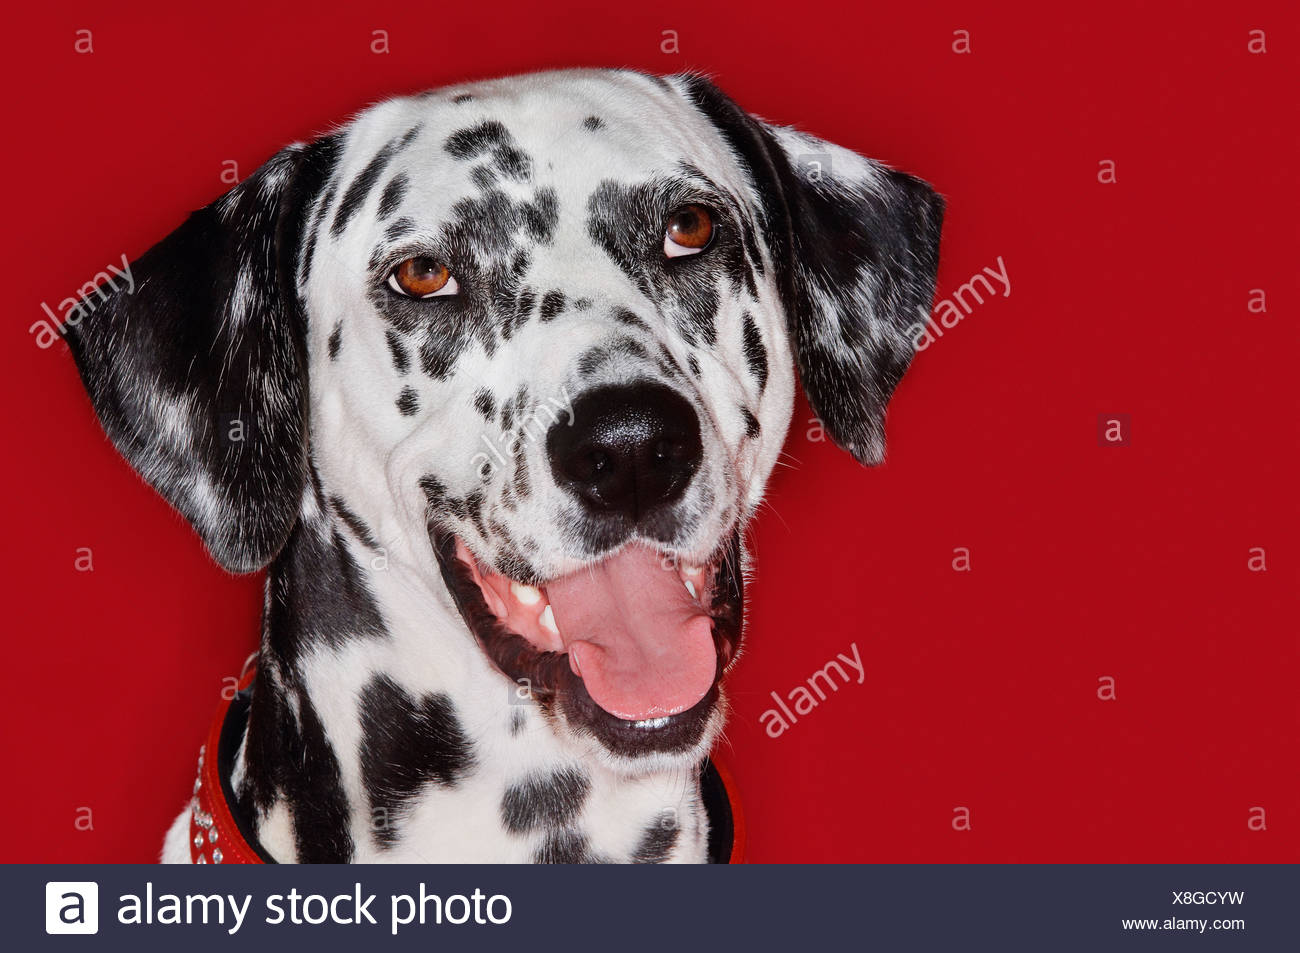 Dalmatian, close-up, mouth open - Stock Image